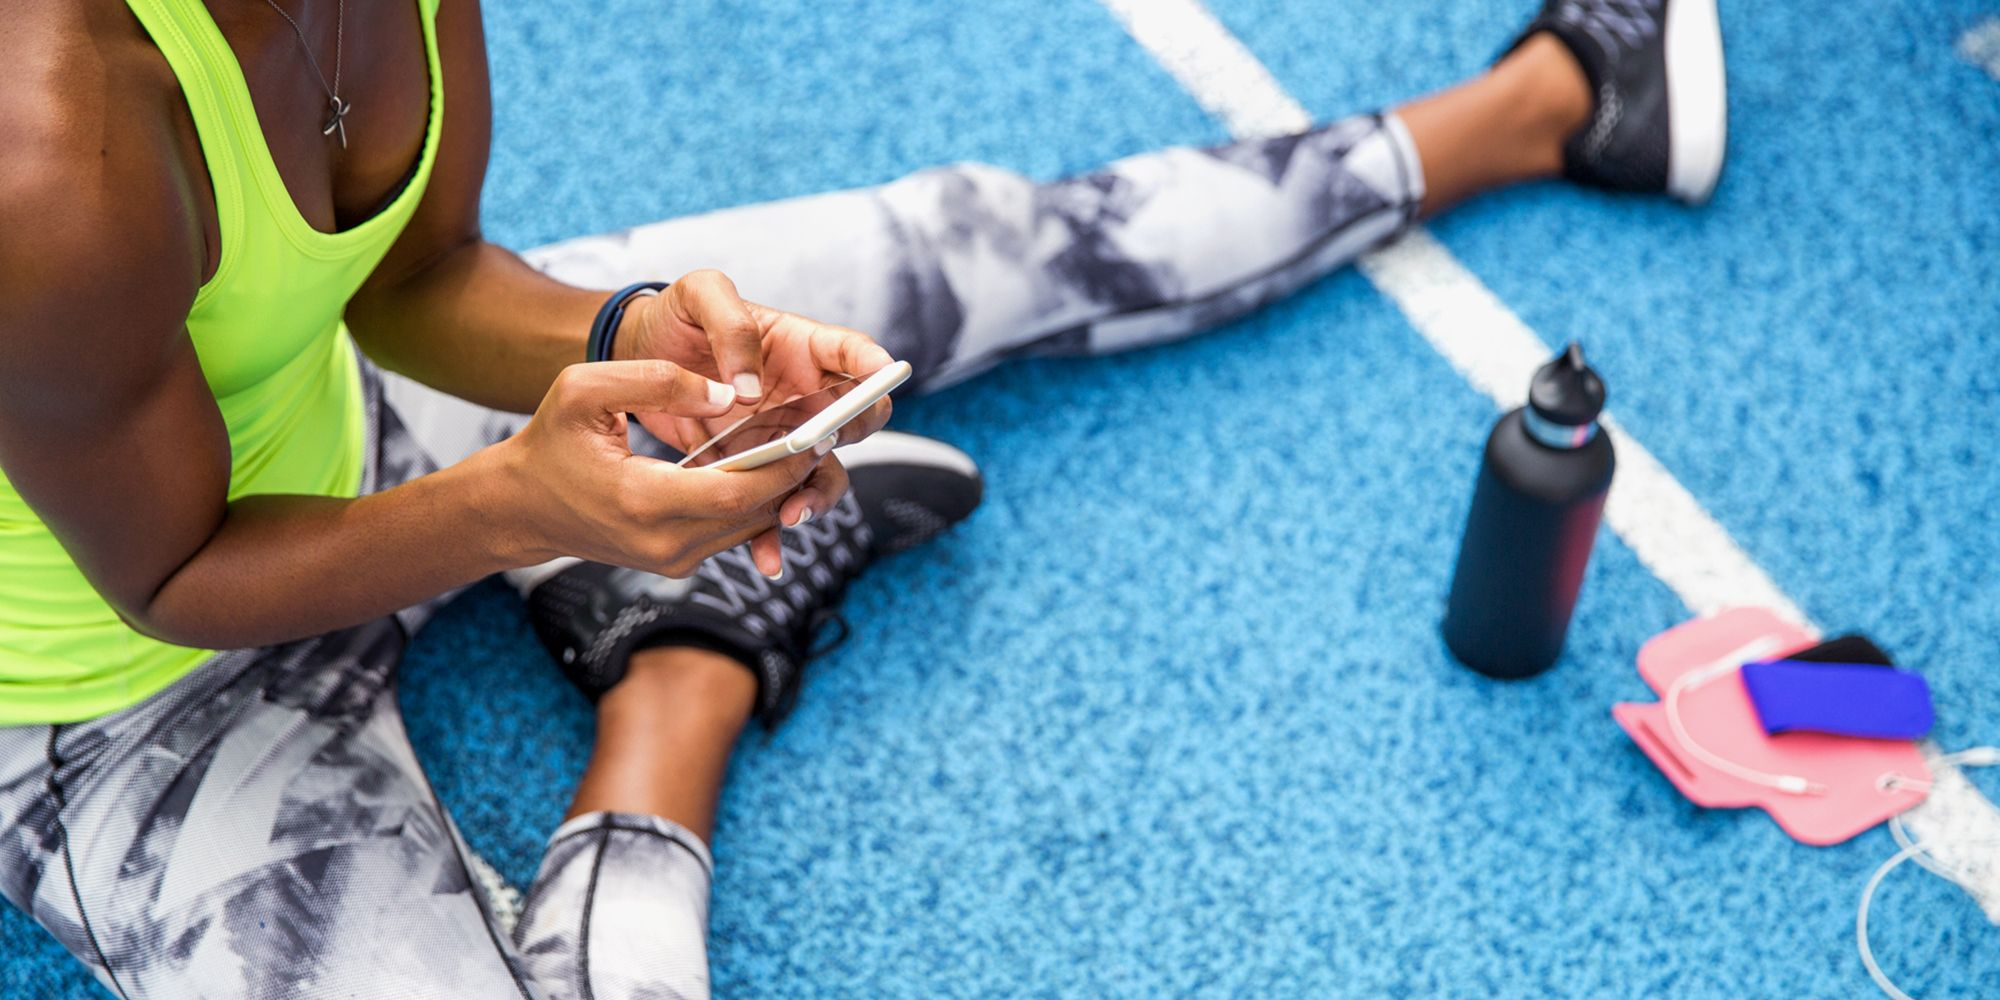 16 Workout Apps You'll Want to Download Right Now